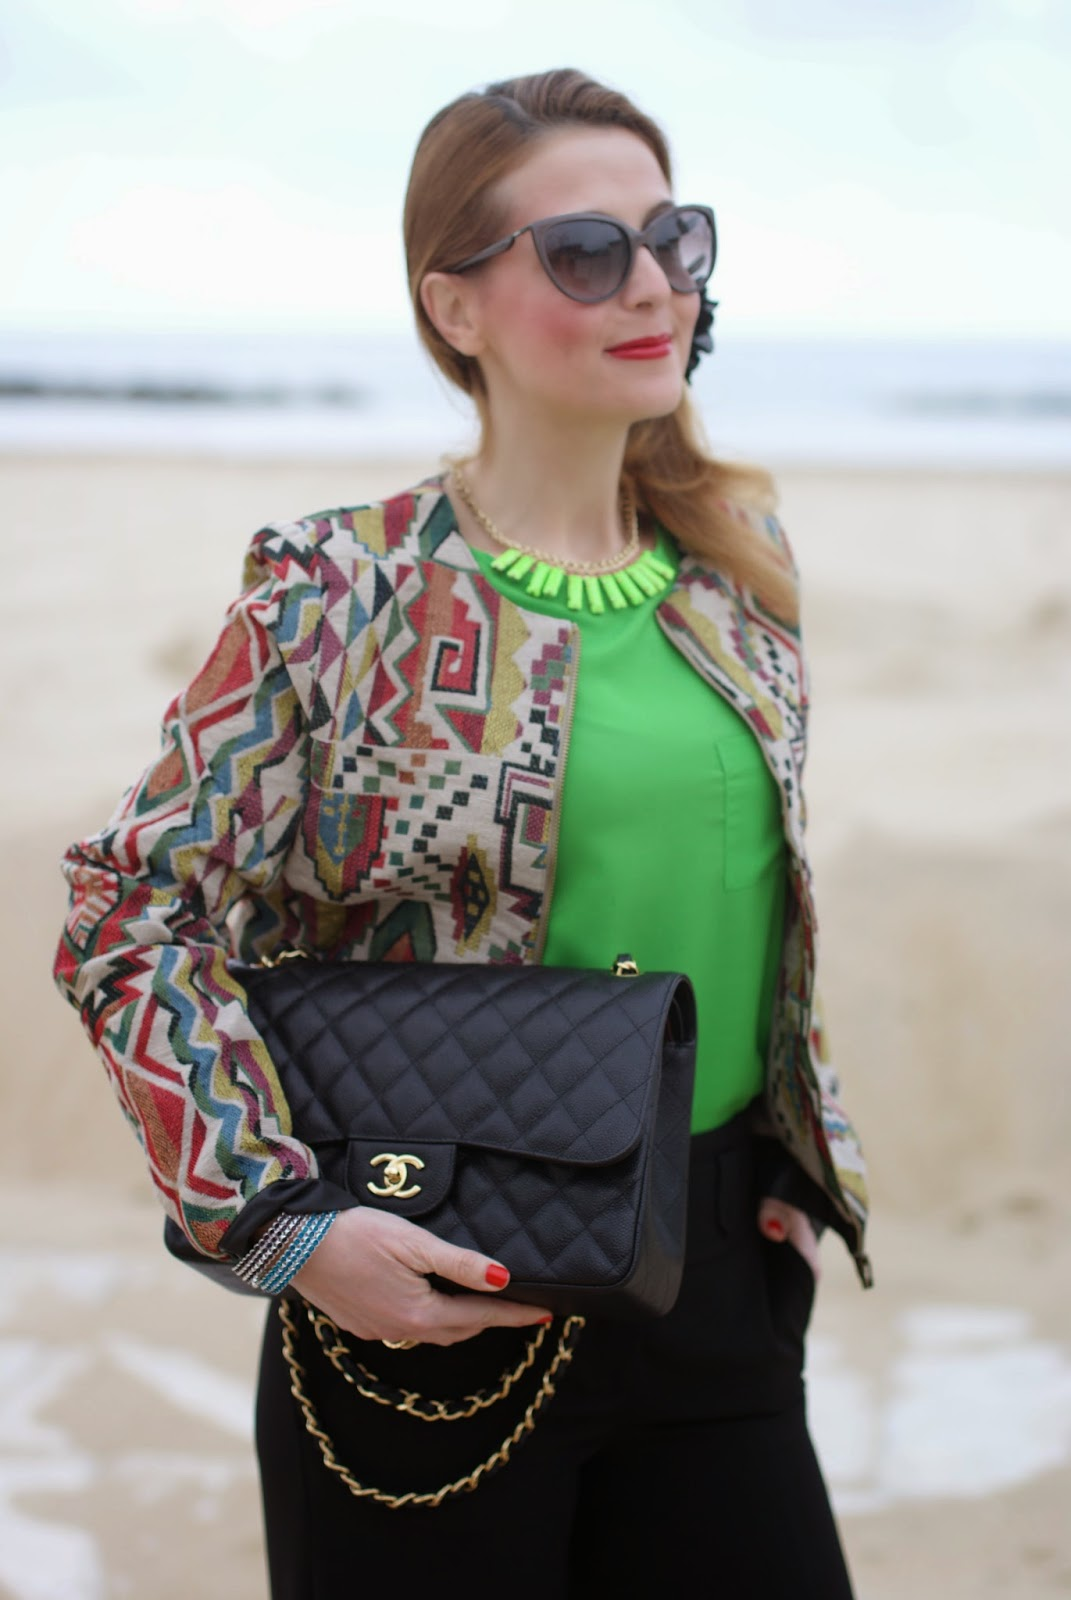 Chanel 2.55 classic flap bag, Paramita jacket, bomber jacket, French Connection green blouse, palazzo pants, Lunatic pantaloni, sided ponytail, Fashion and Cookies fashion blog, fashion blogger